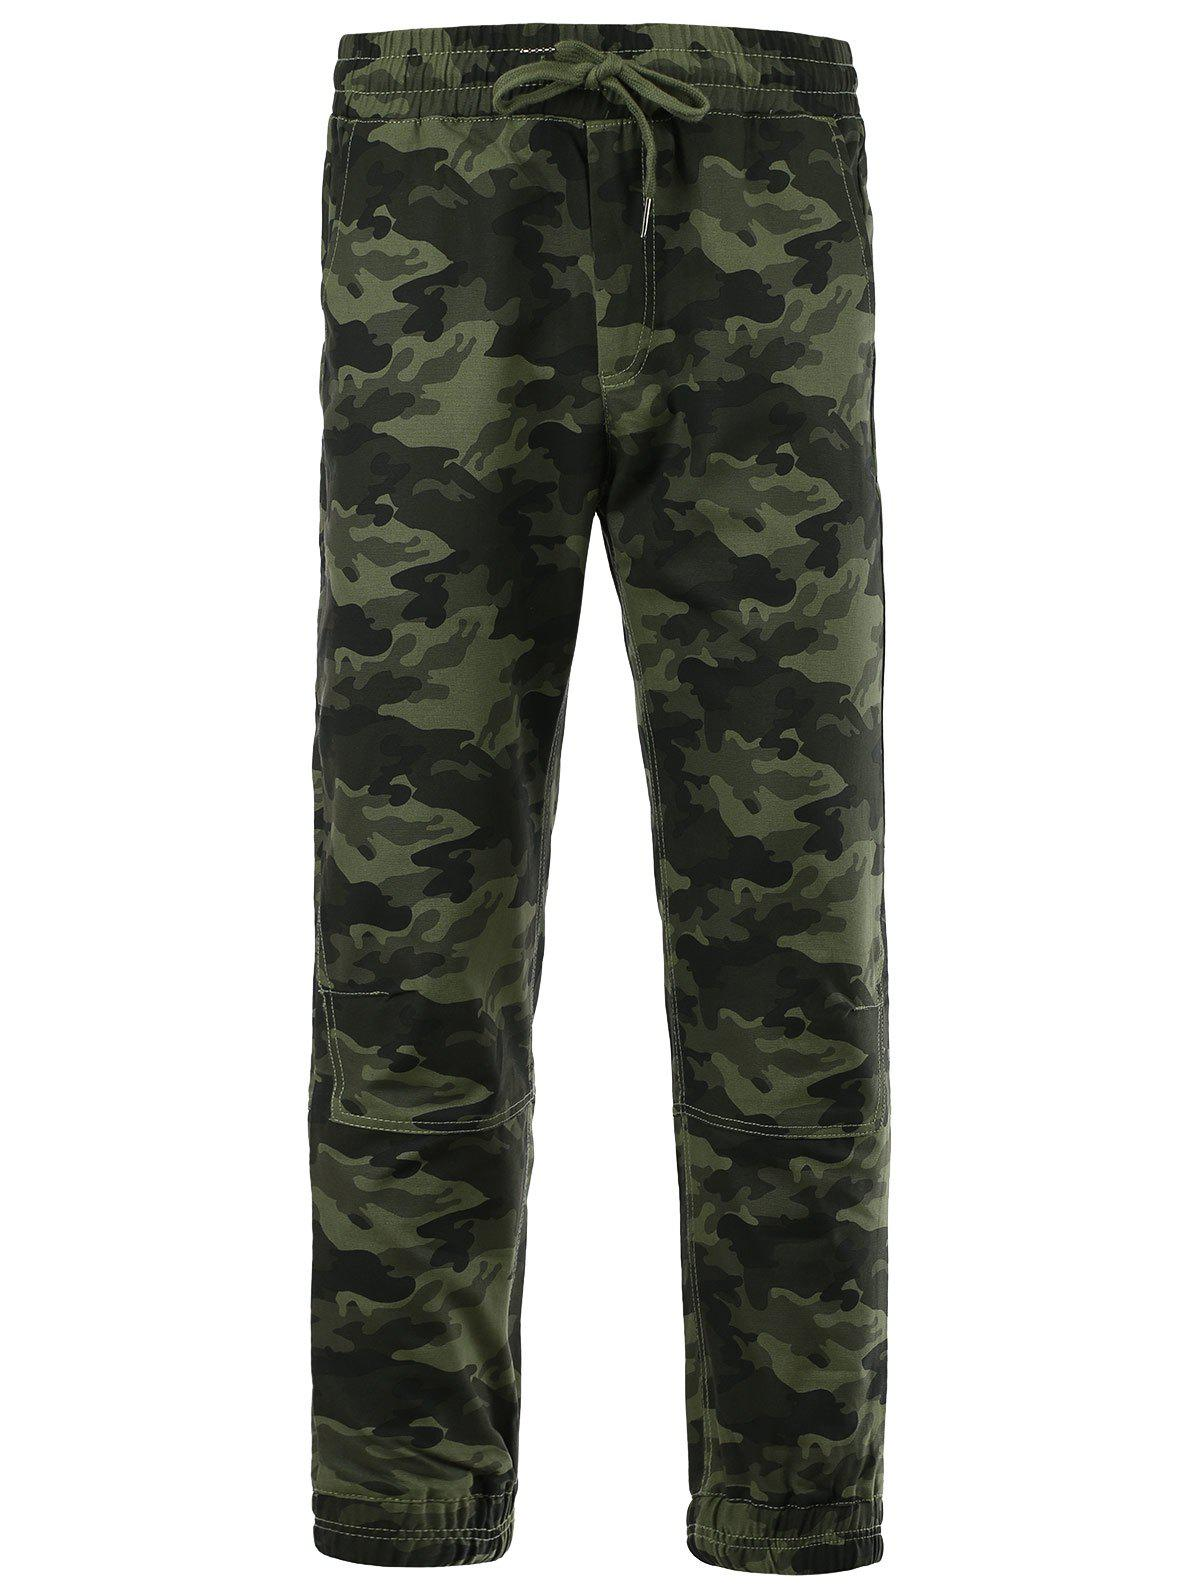 Cotton Blends Camouflage Beam Feet Lace-Up Pants